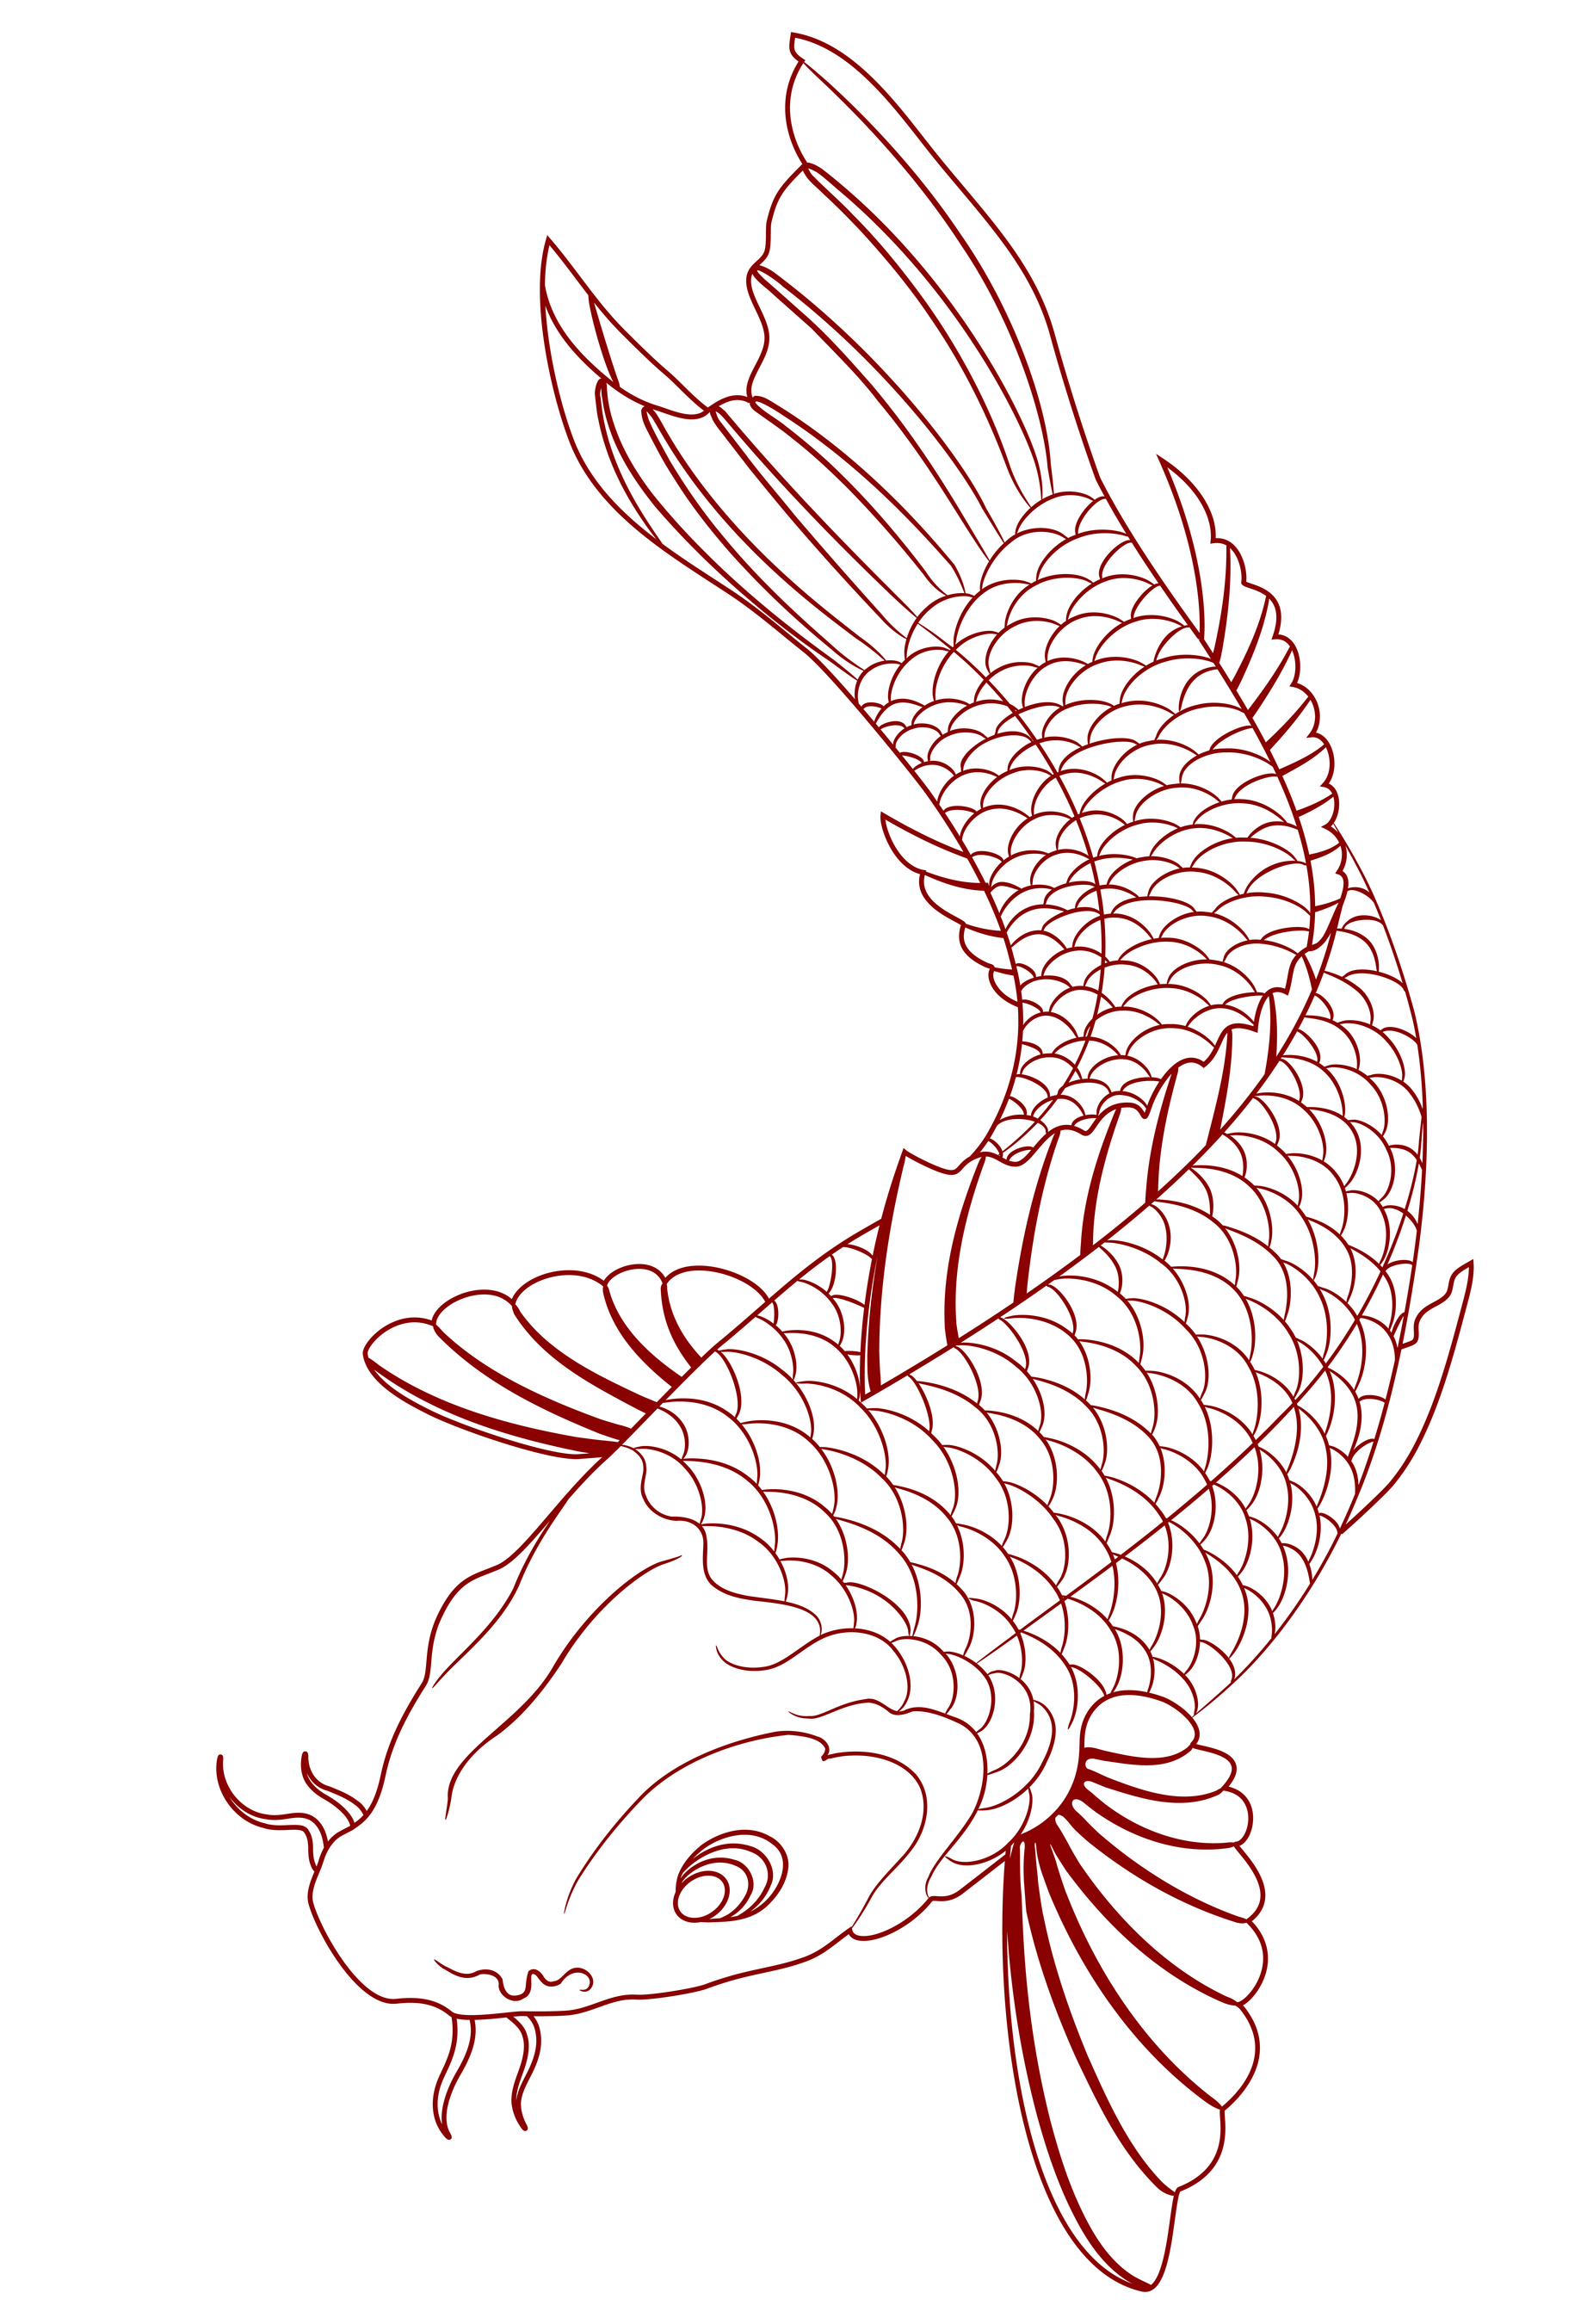 Koi Fish Meaning In Buddhism Images Lobster And Fish